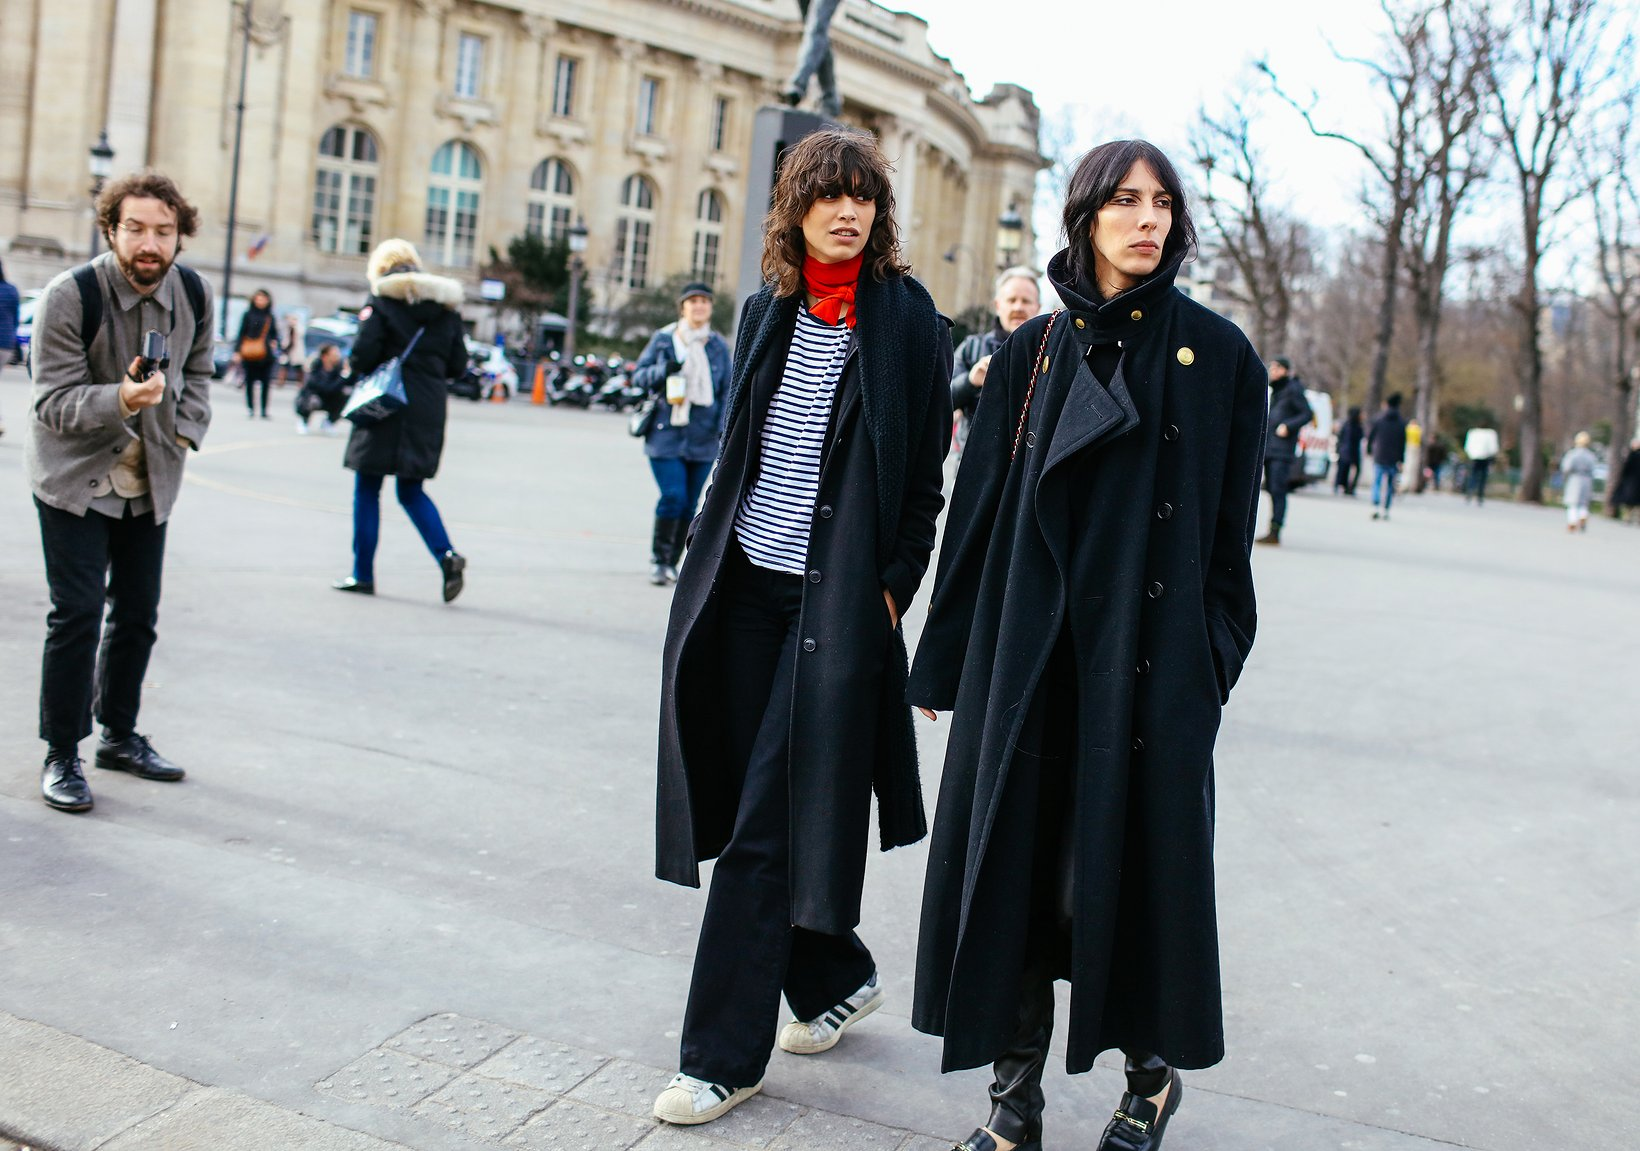 fav-looks-from-paris-fashionwonderer (15)